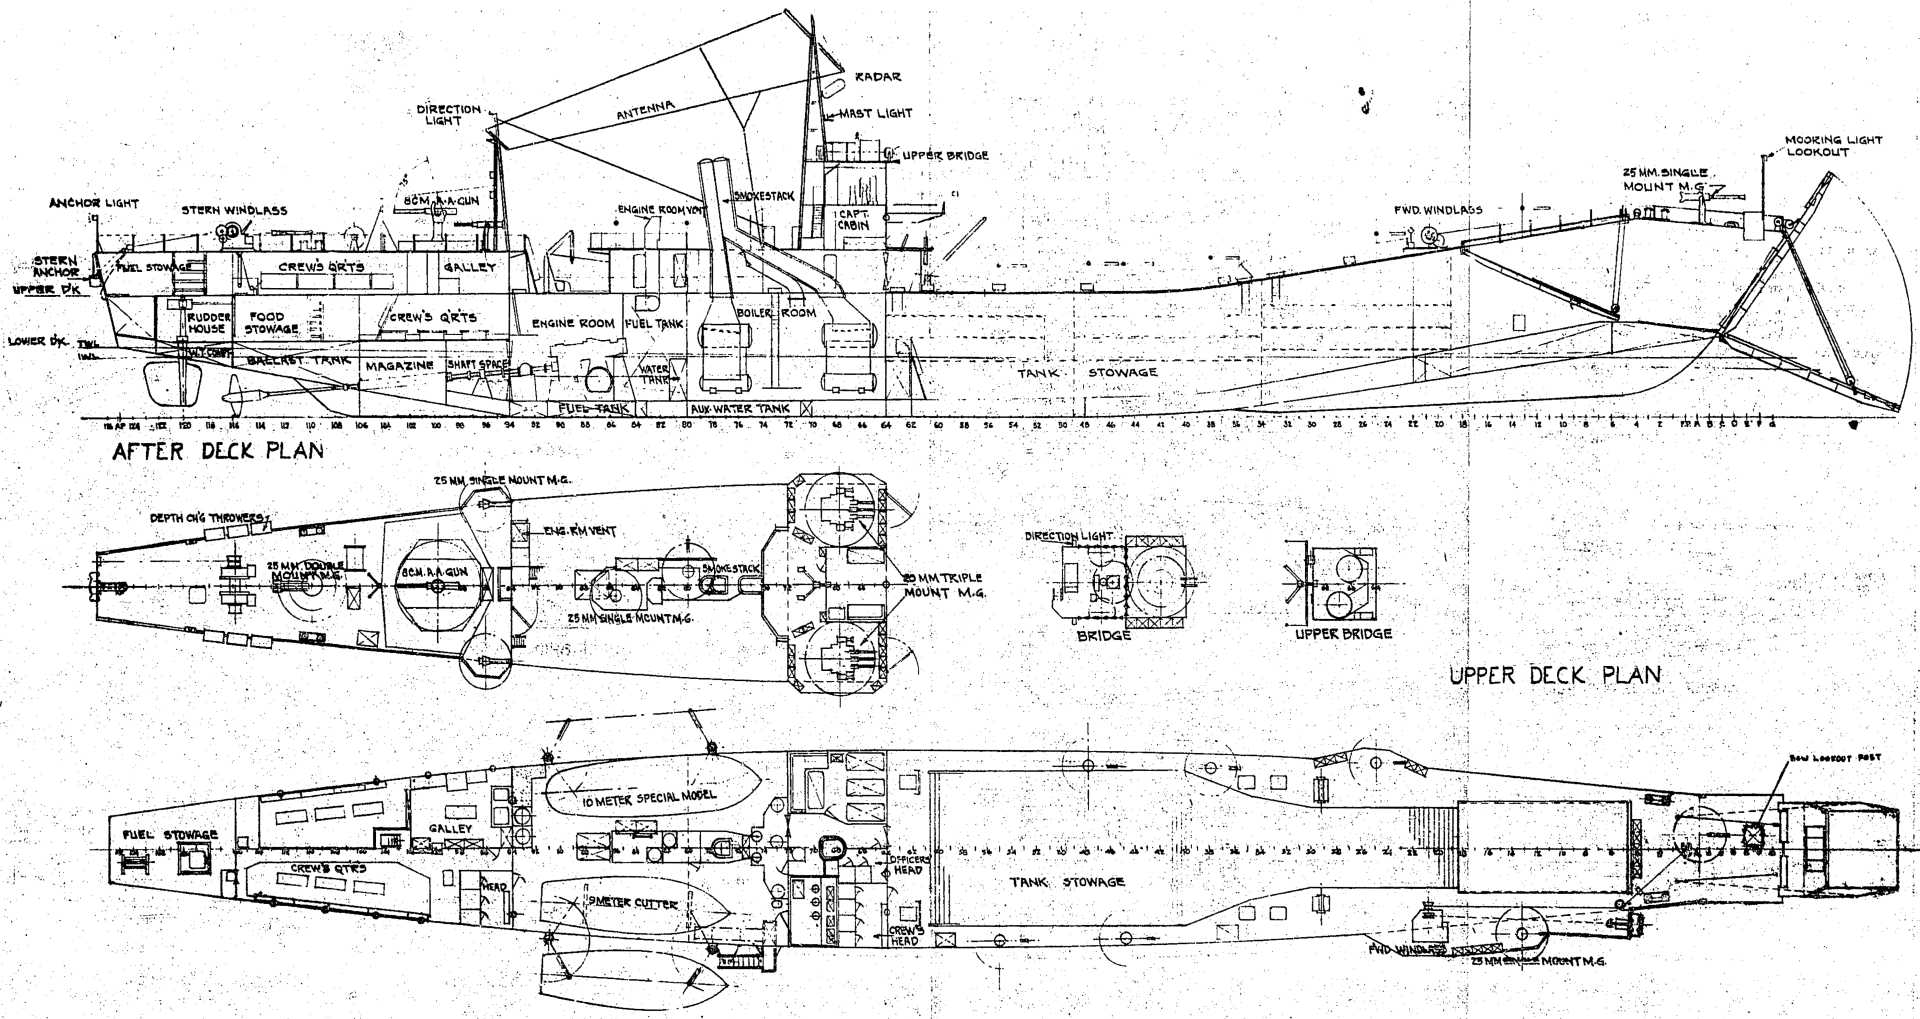 The Ship Model Forum View Topic Calling All IJN